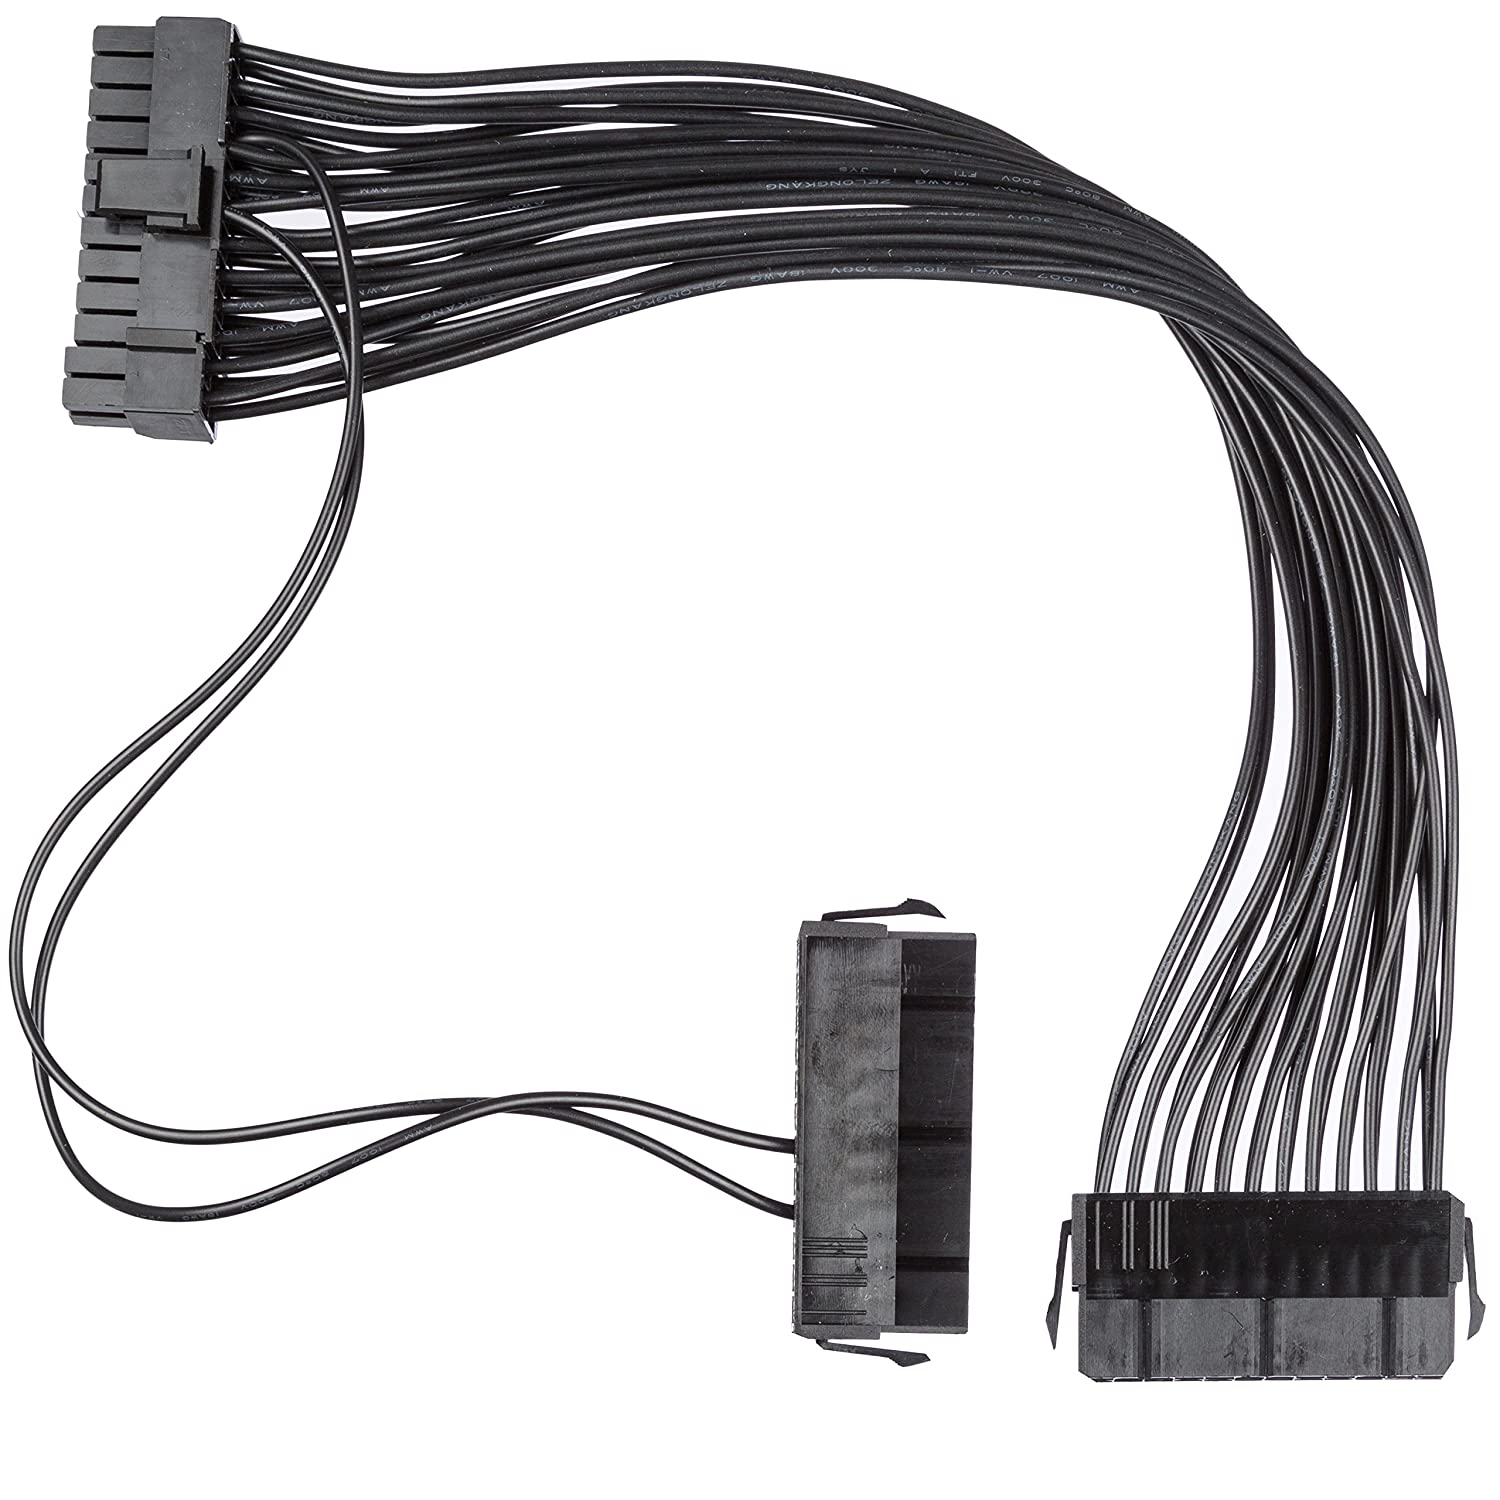 New Dual 24-Pin ATX Power Supply Motherboard Adapter Cable for Using Two PSU's by Cryptosaur Gear